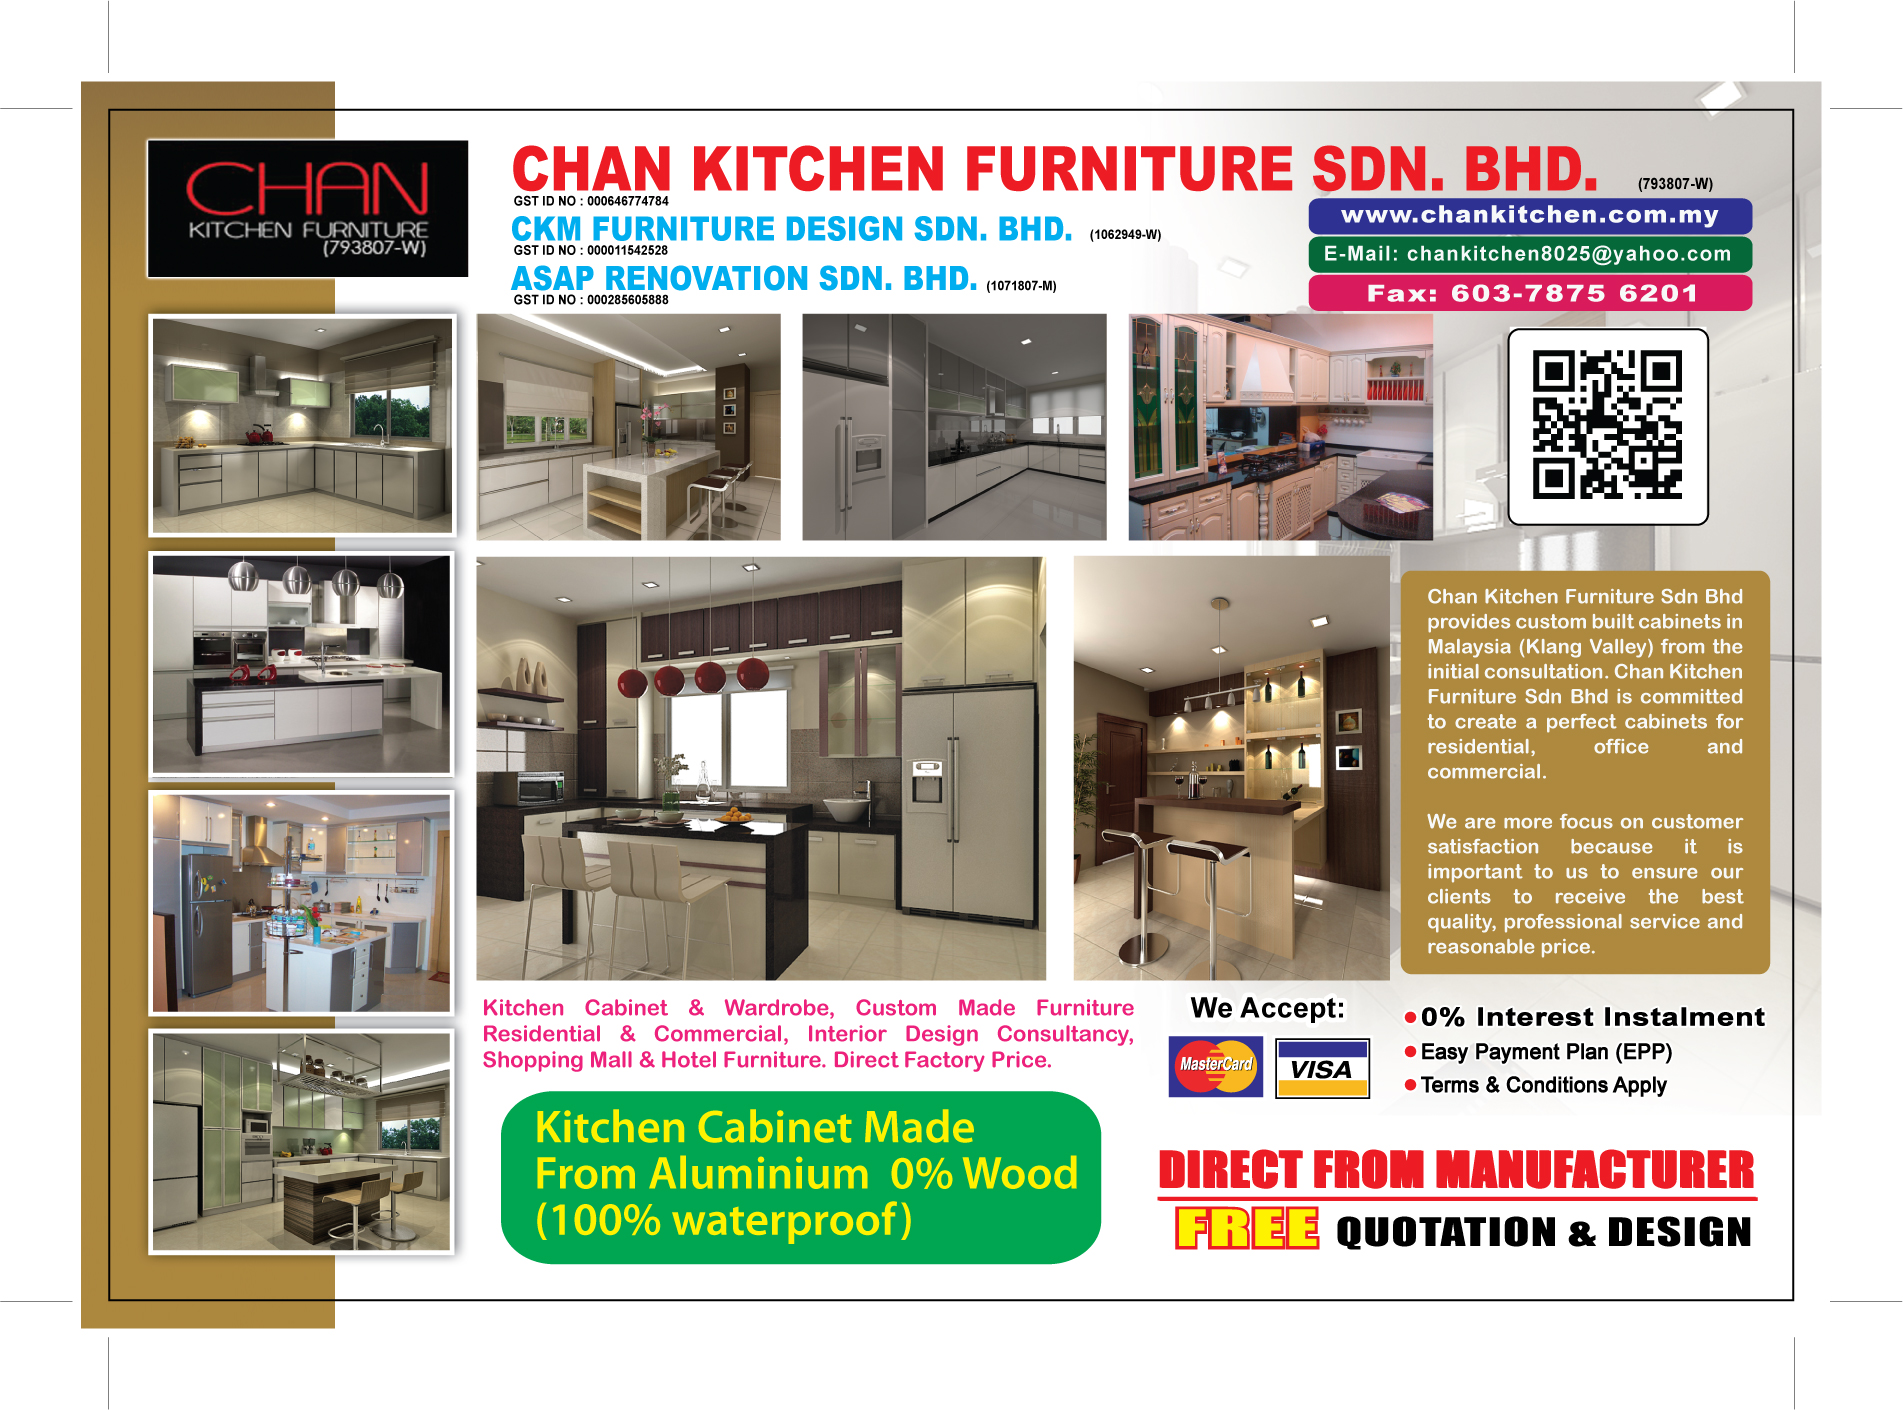 Chan Furniture M Sdn Bhd Best Furniture Imageserve Co